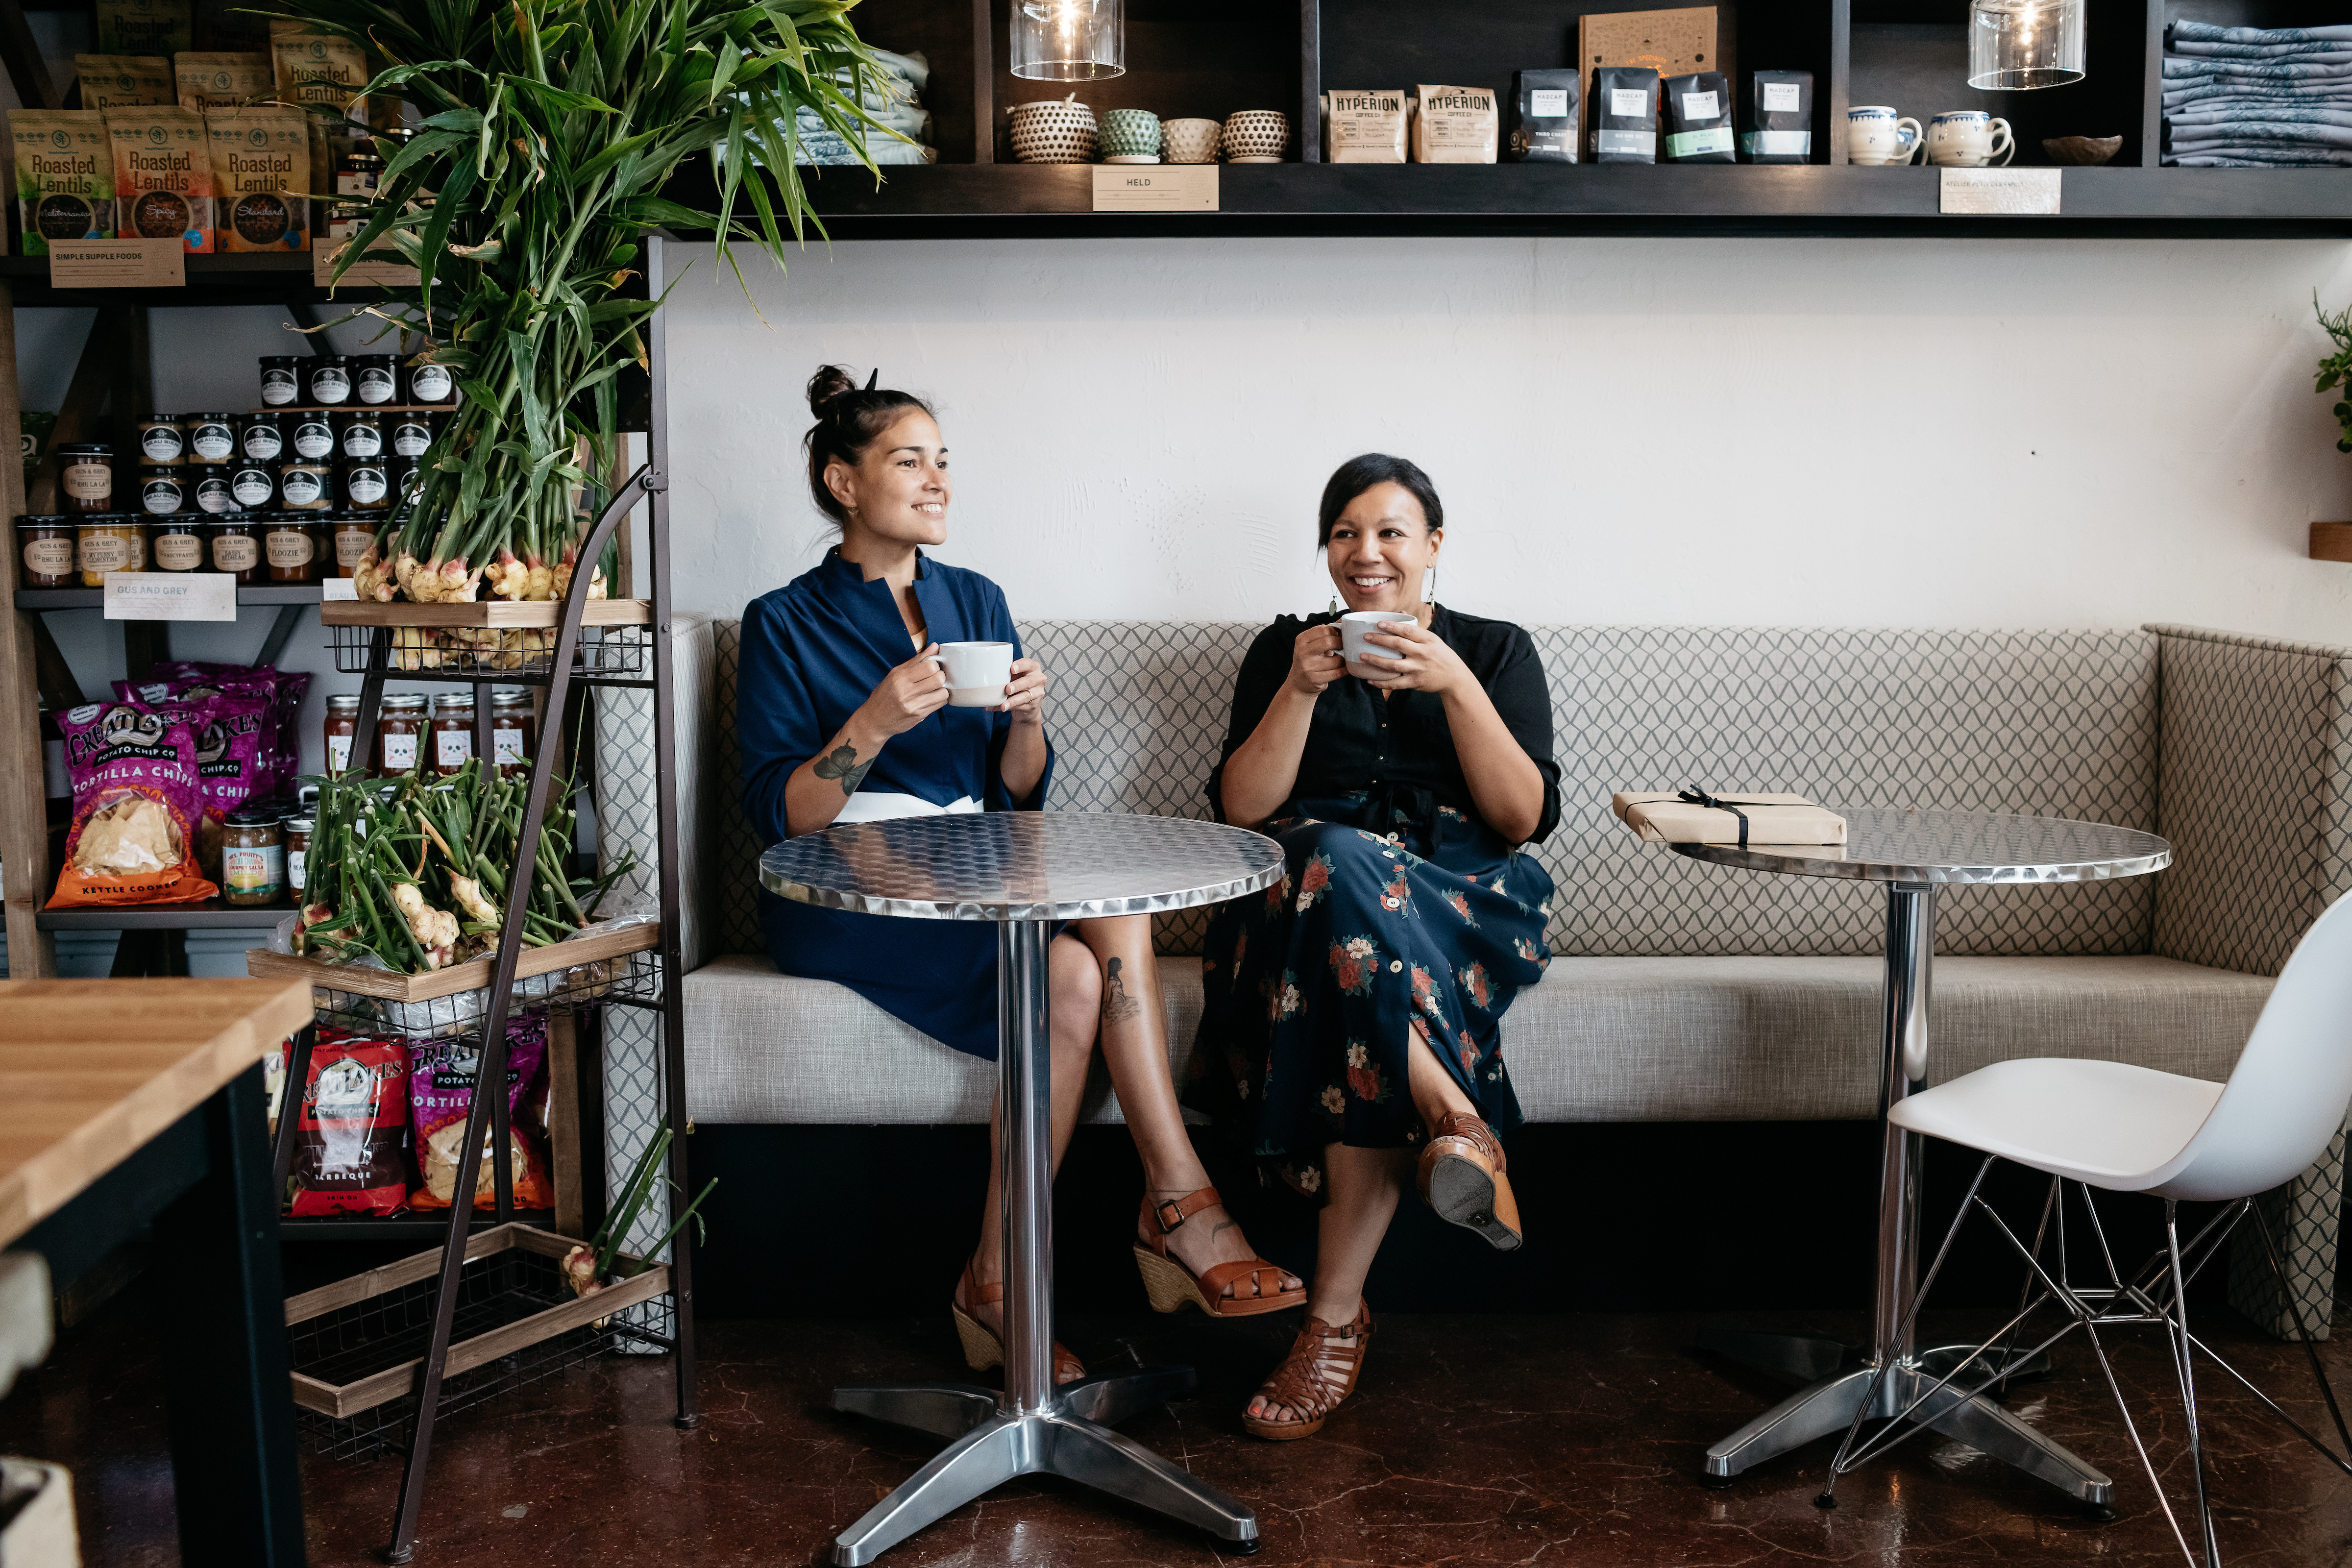 Both women are sitting at a table with mugs of coffee.